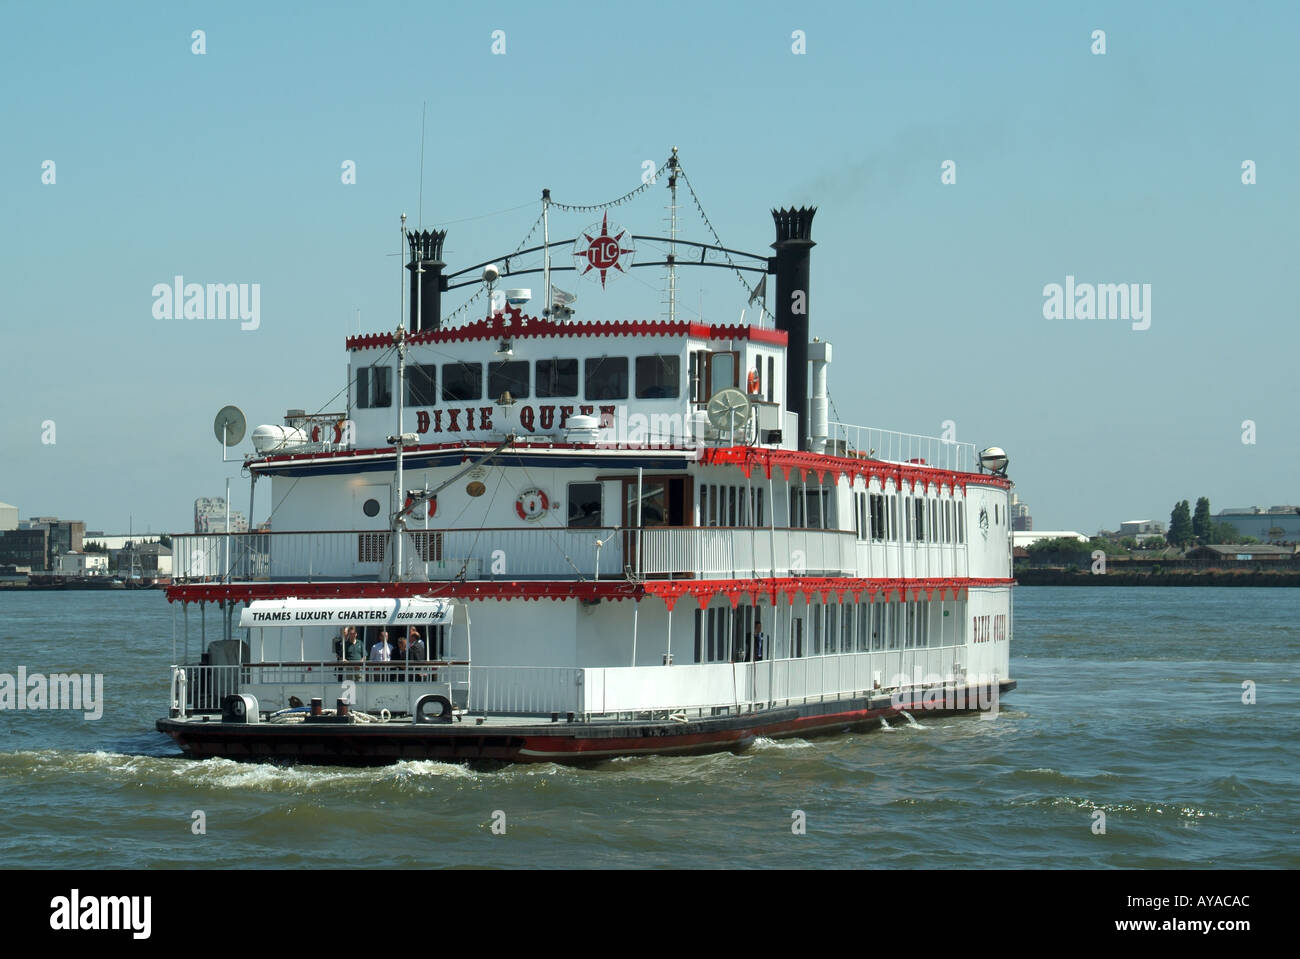 river queen paddle steamer stock photos river queen paddle steamer